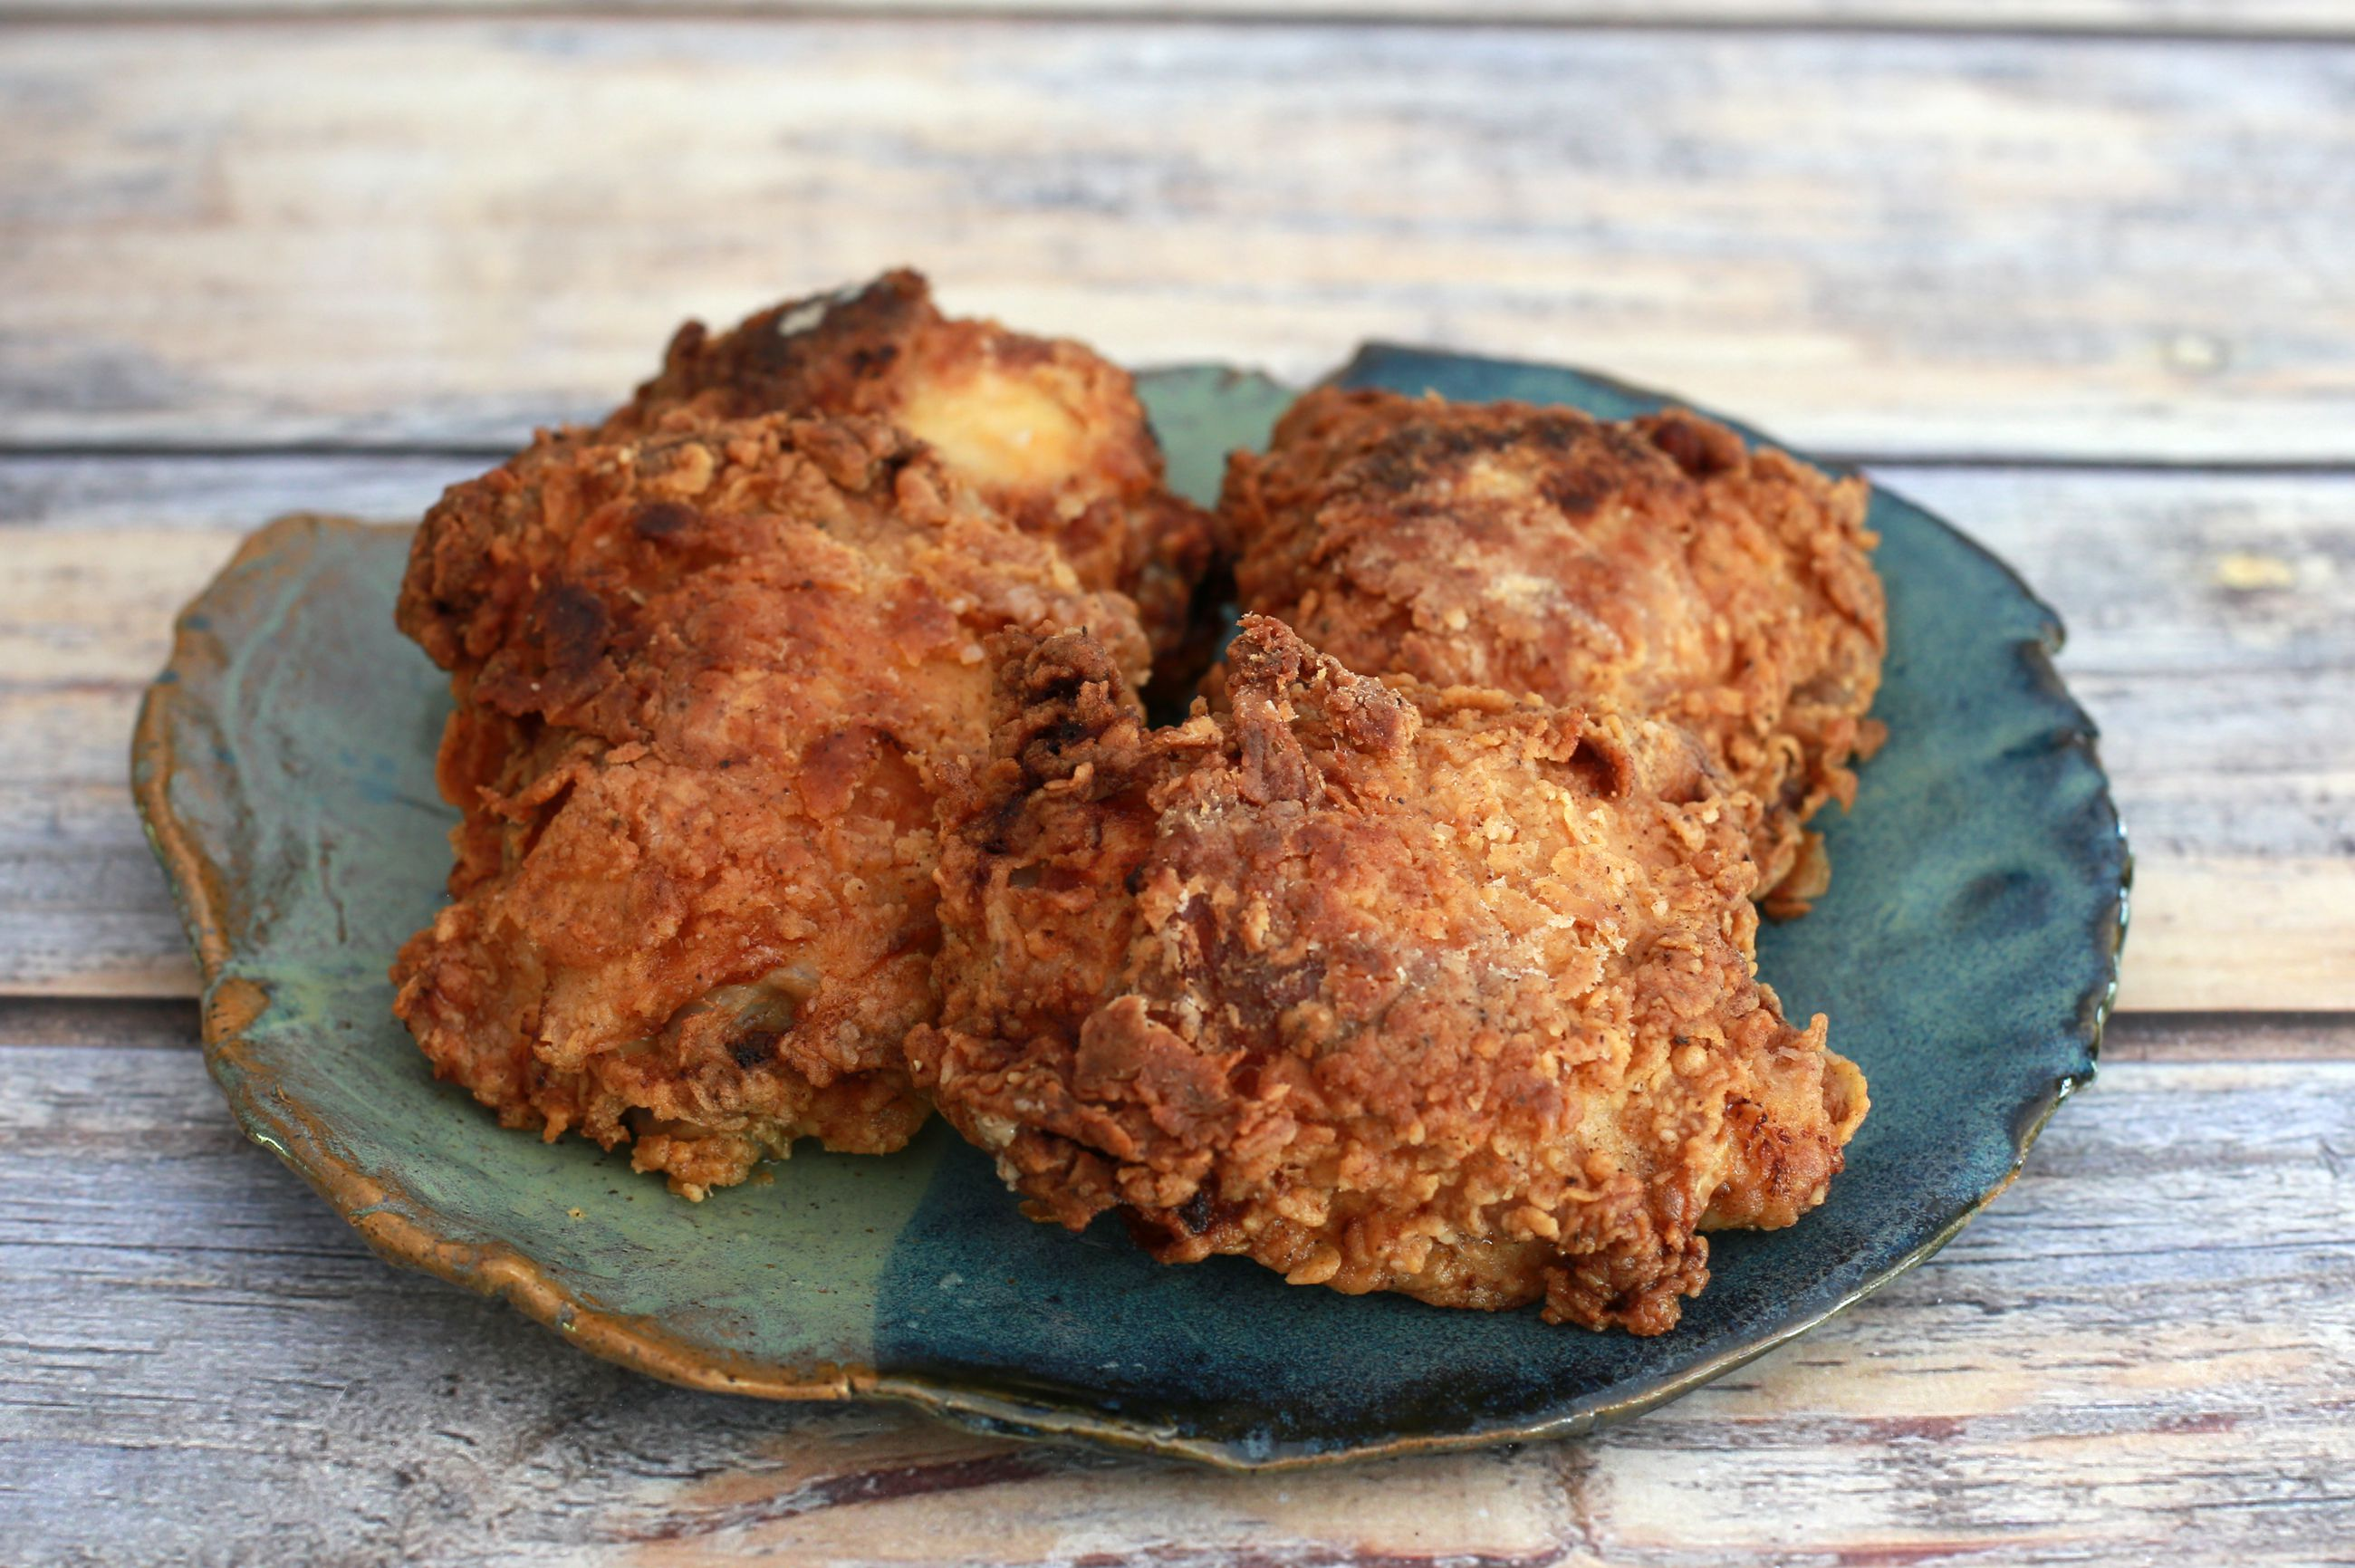 Baked Chicken Recipes Thighs Crispy